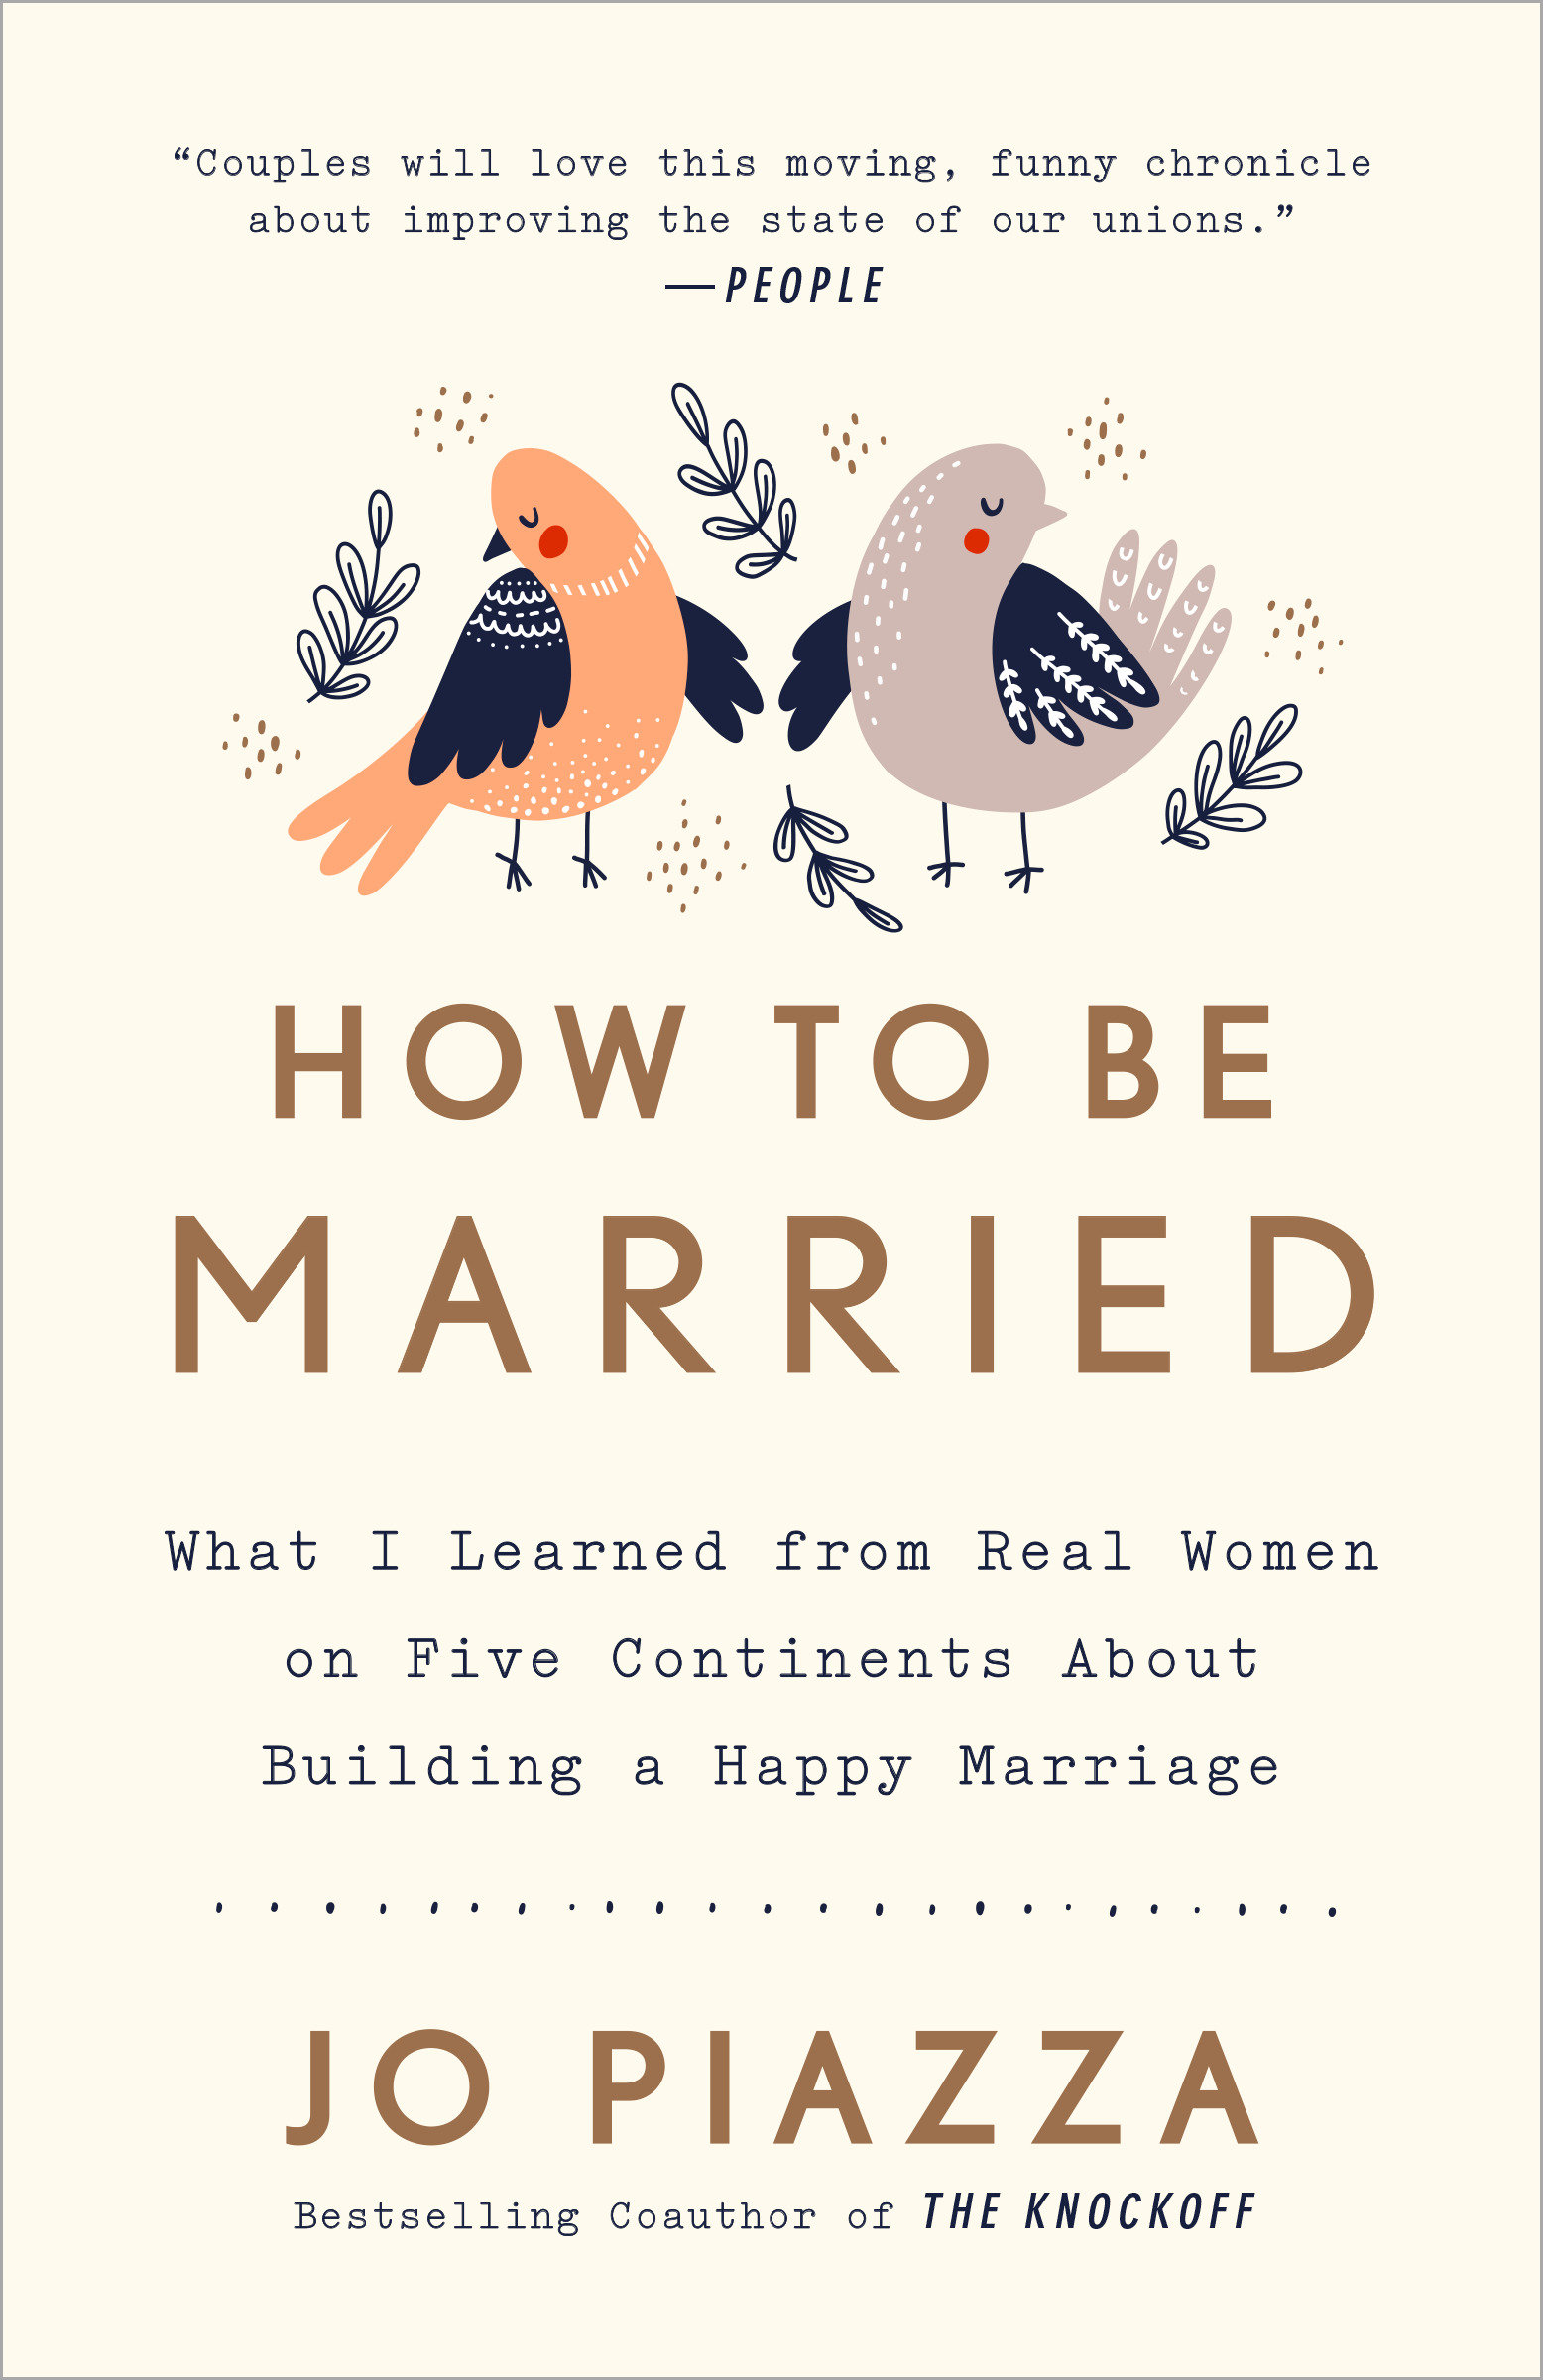 How to be married what I learned from real women on five continents about surviving my first (really hard) year of marriage cover image